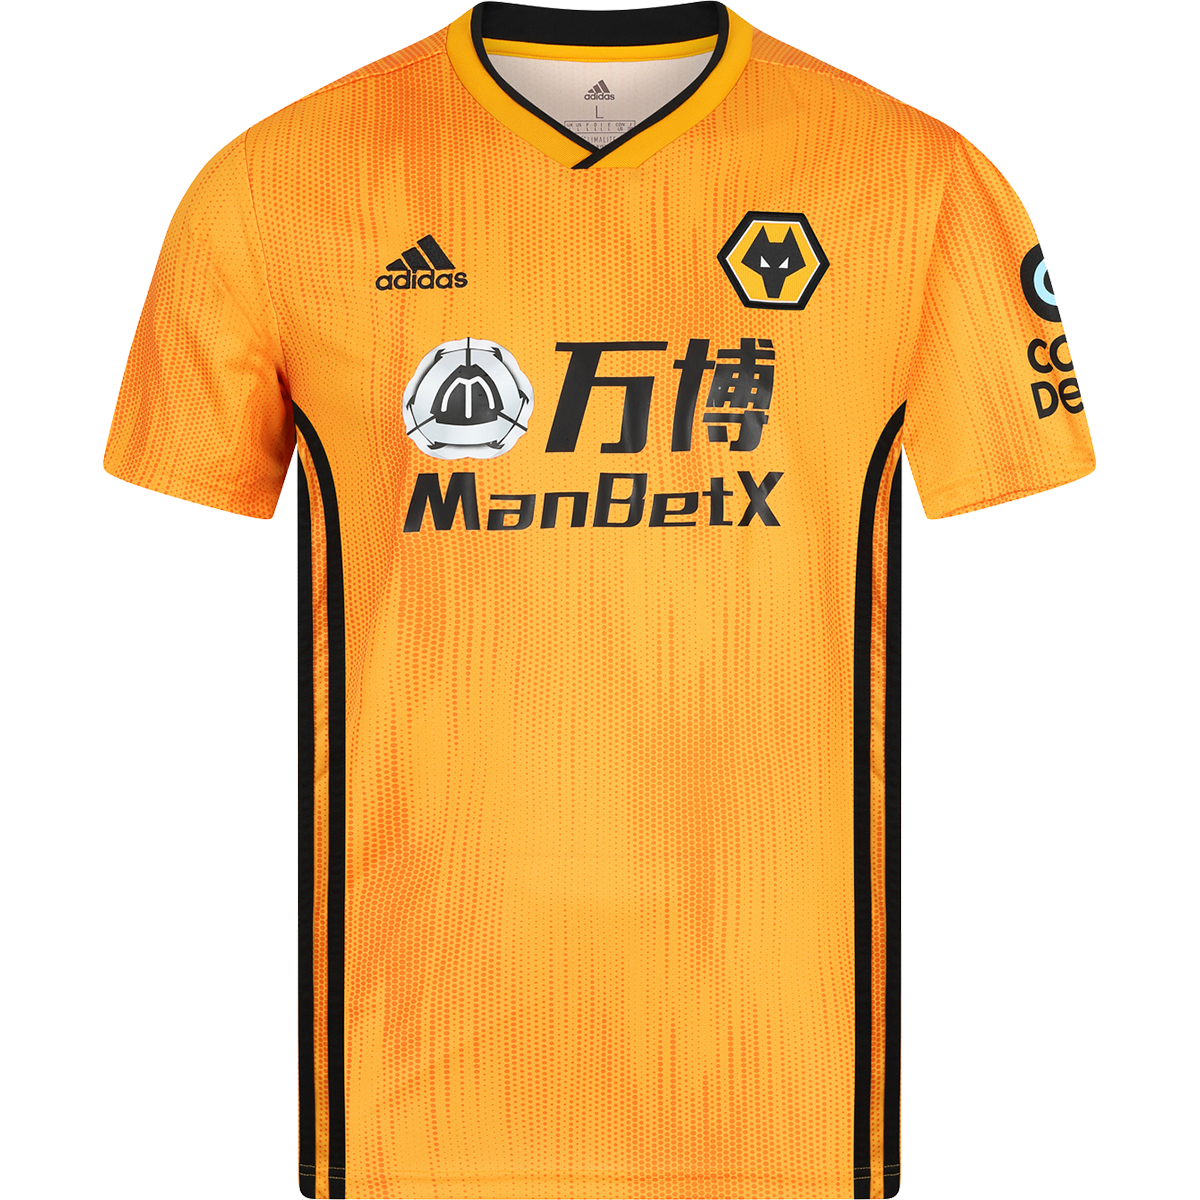 Adidas Wolverhampton Wanderers Home Jersey 19 20 M Home T Shirts Soccer Jersey Shirts